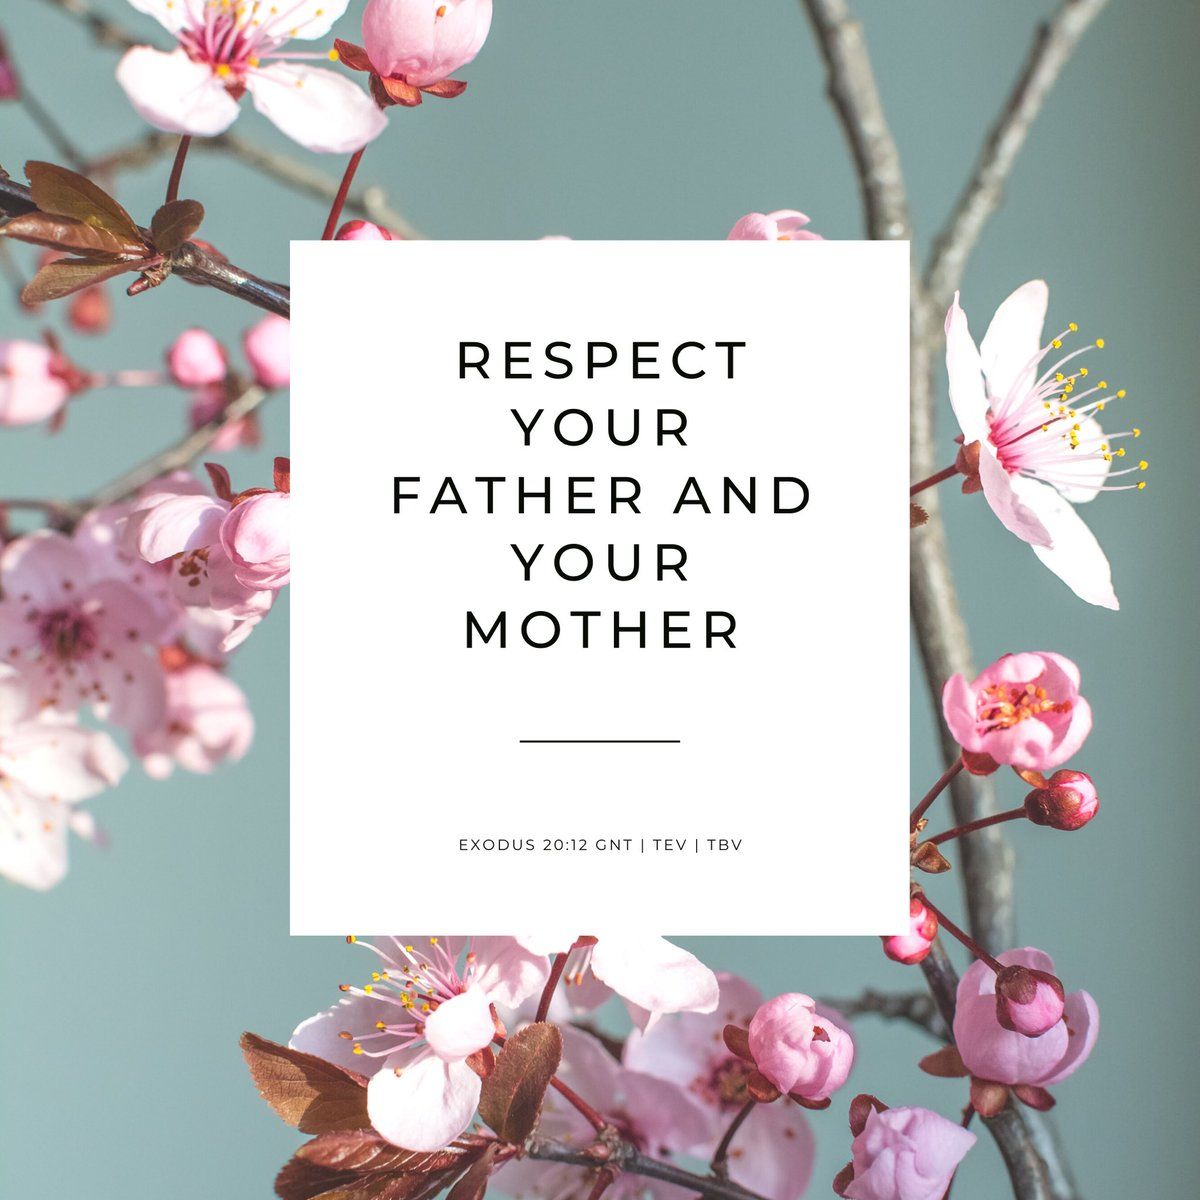 Exodus 20:12 TEV (The Ten Commandments) Respect your father and your mother, so that you may live a long time in the land that I am giving you. #sharing #faith #Monday #Bible #Gospel #Scripture #Exodus #ReadTheBible #ReadYourBible #BibleExposition #TheBibleVerses #tbv #TEV